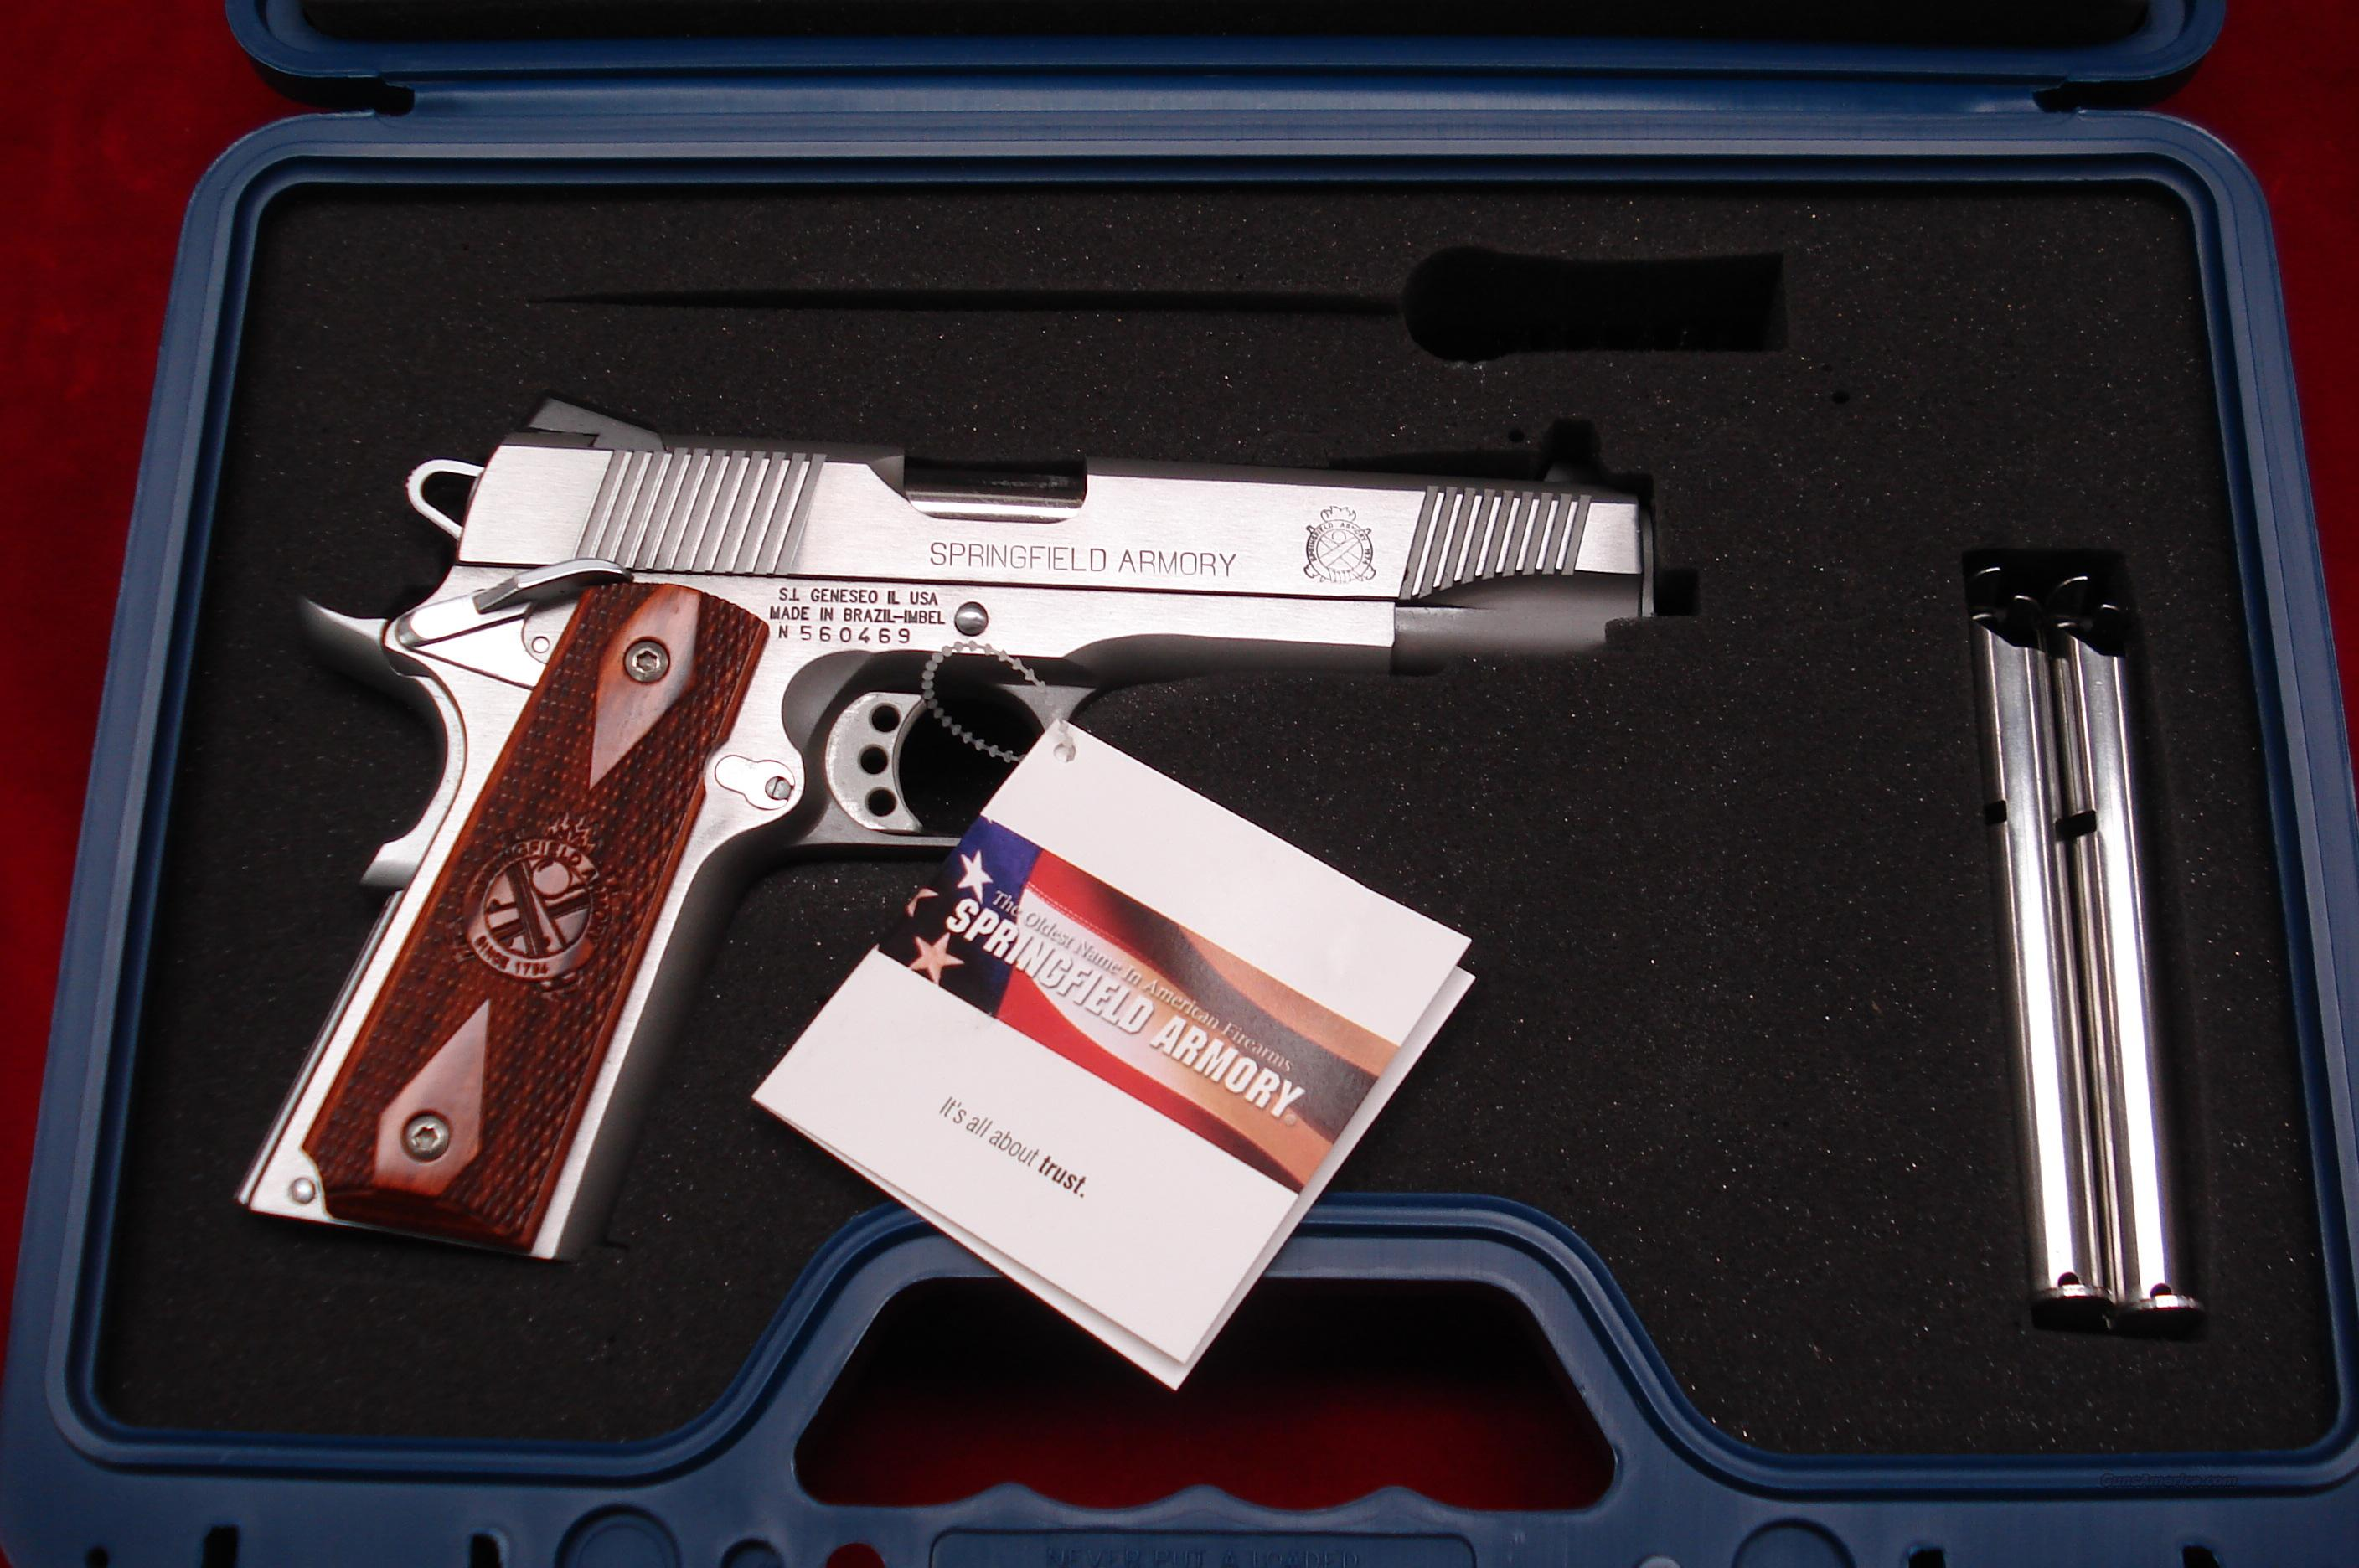 SPRINGFIELD ARMORY STAINLESS 1911 A1 LOADED 45 ACP NEW (PX9151LP)  Guns > Pistols > Springfield Armory Pistols > 1911 Type